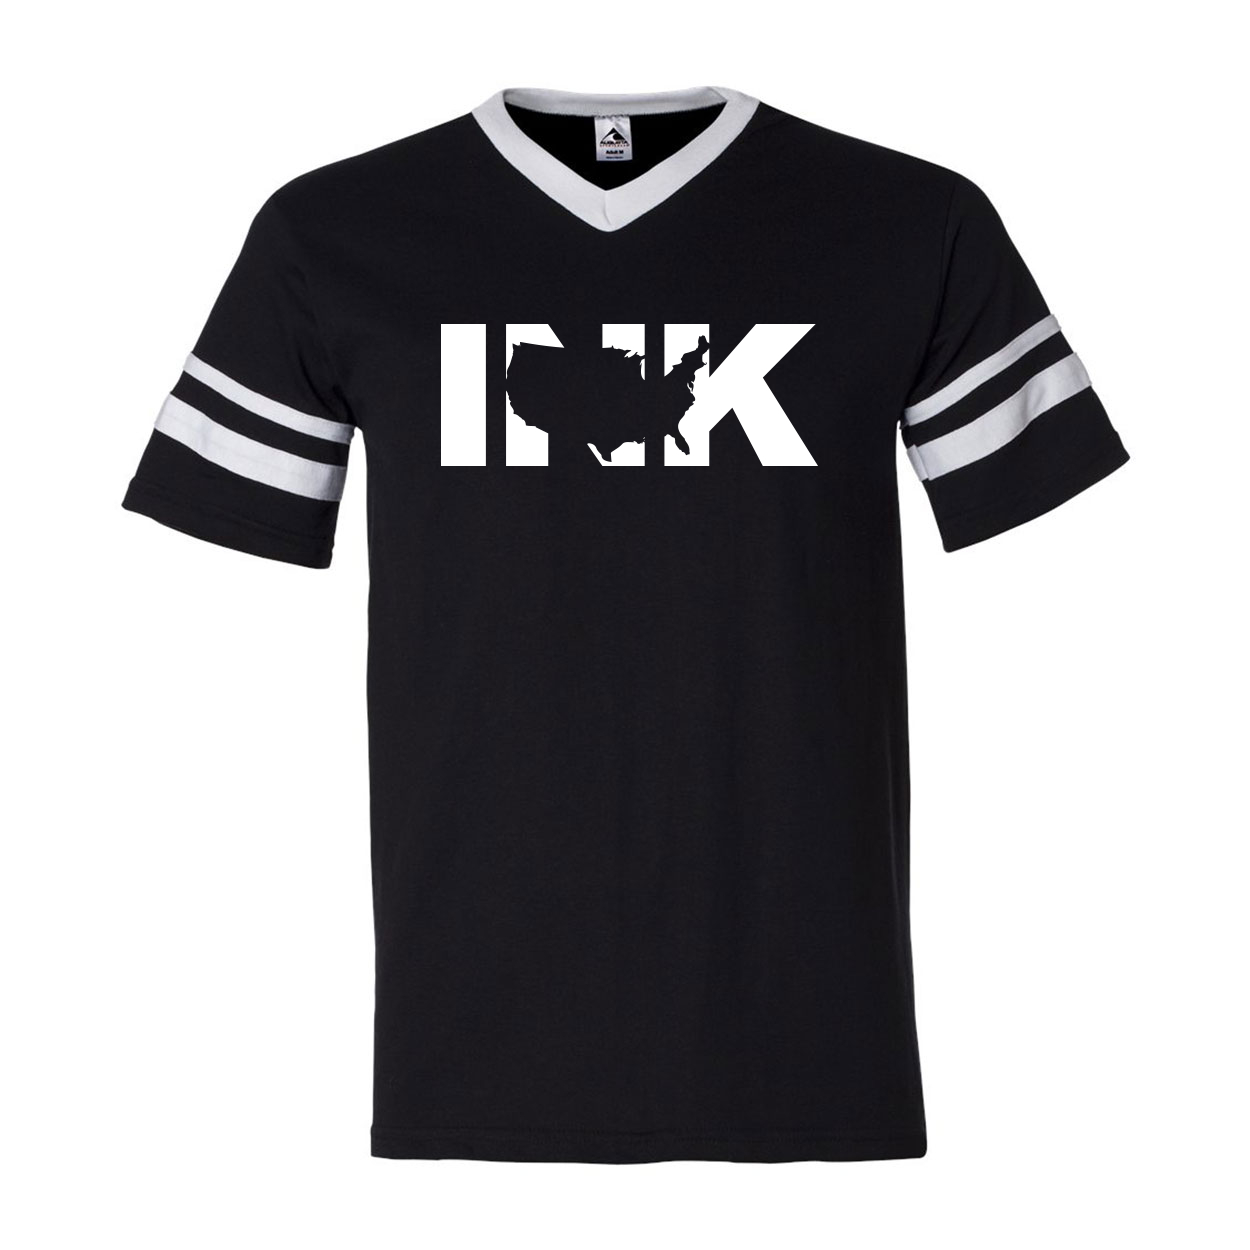 Ink United States Classic Premium Striped Jersey T-Shirt Black/White (White Logo)